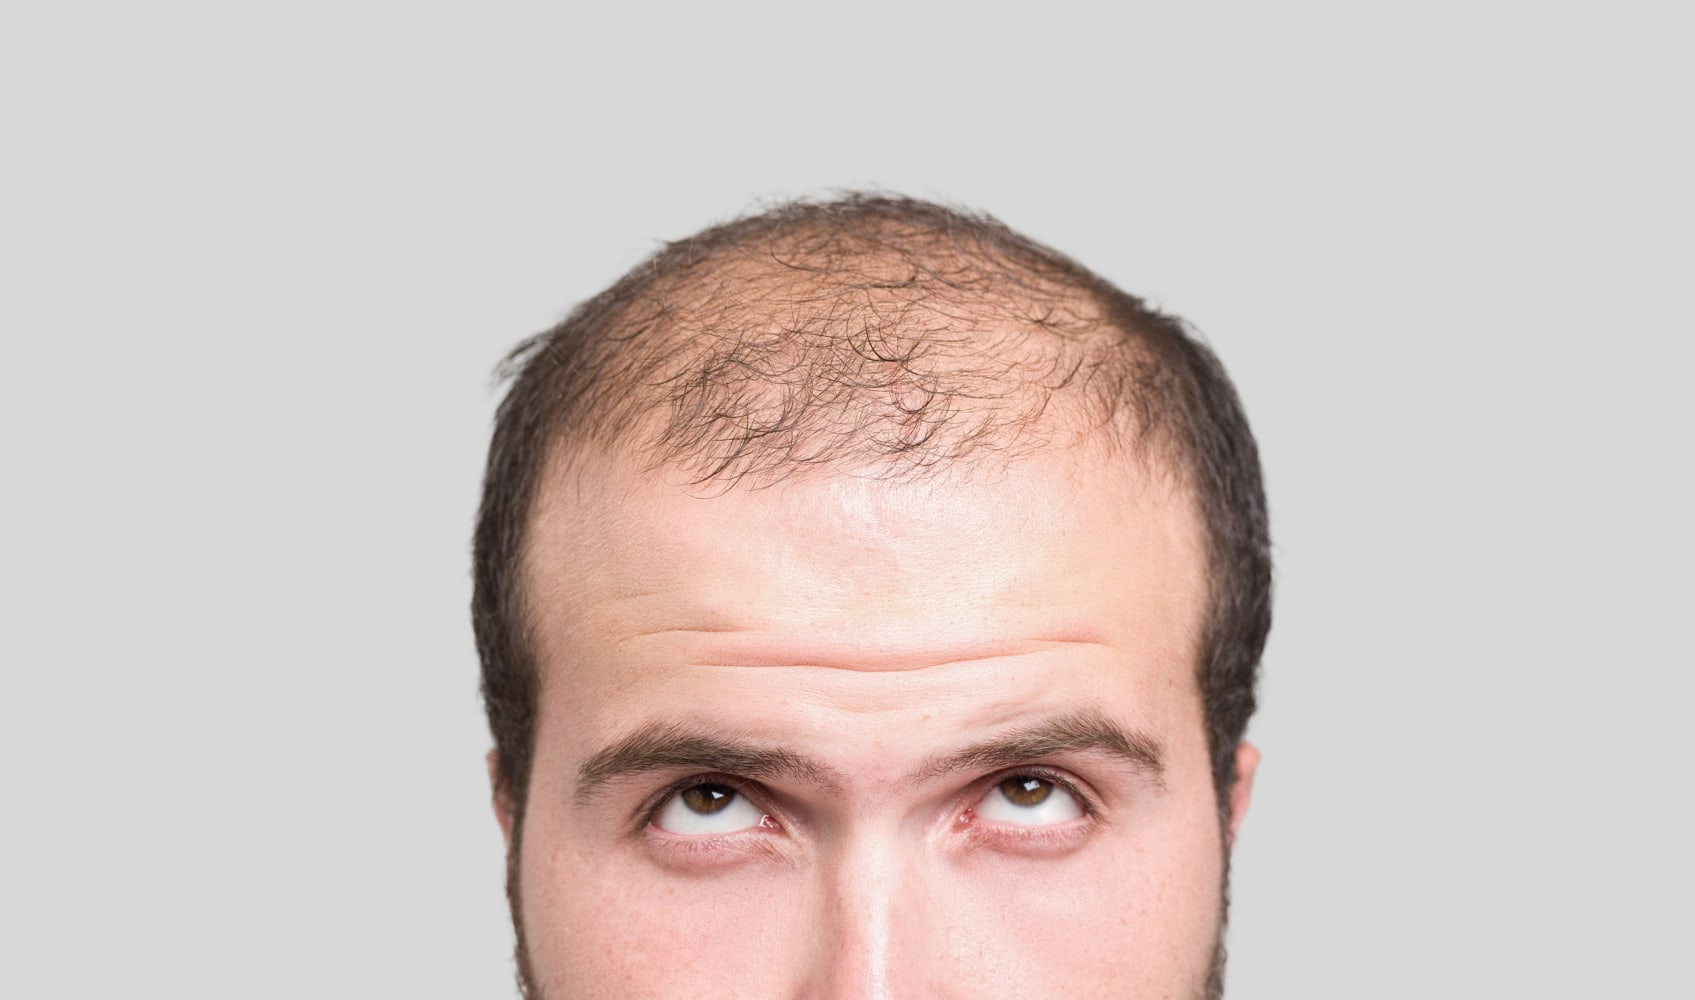 How to take propecia for hair loss